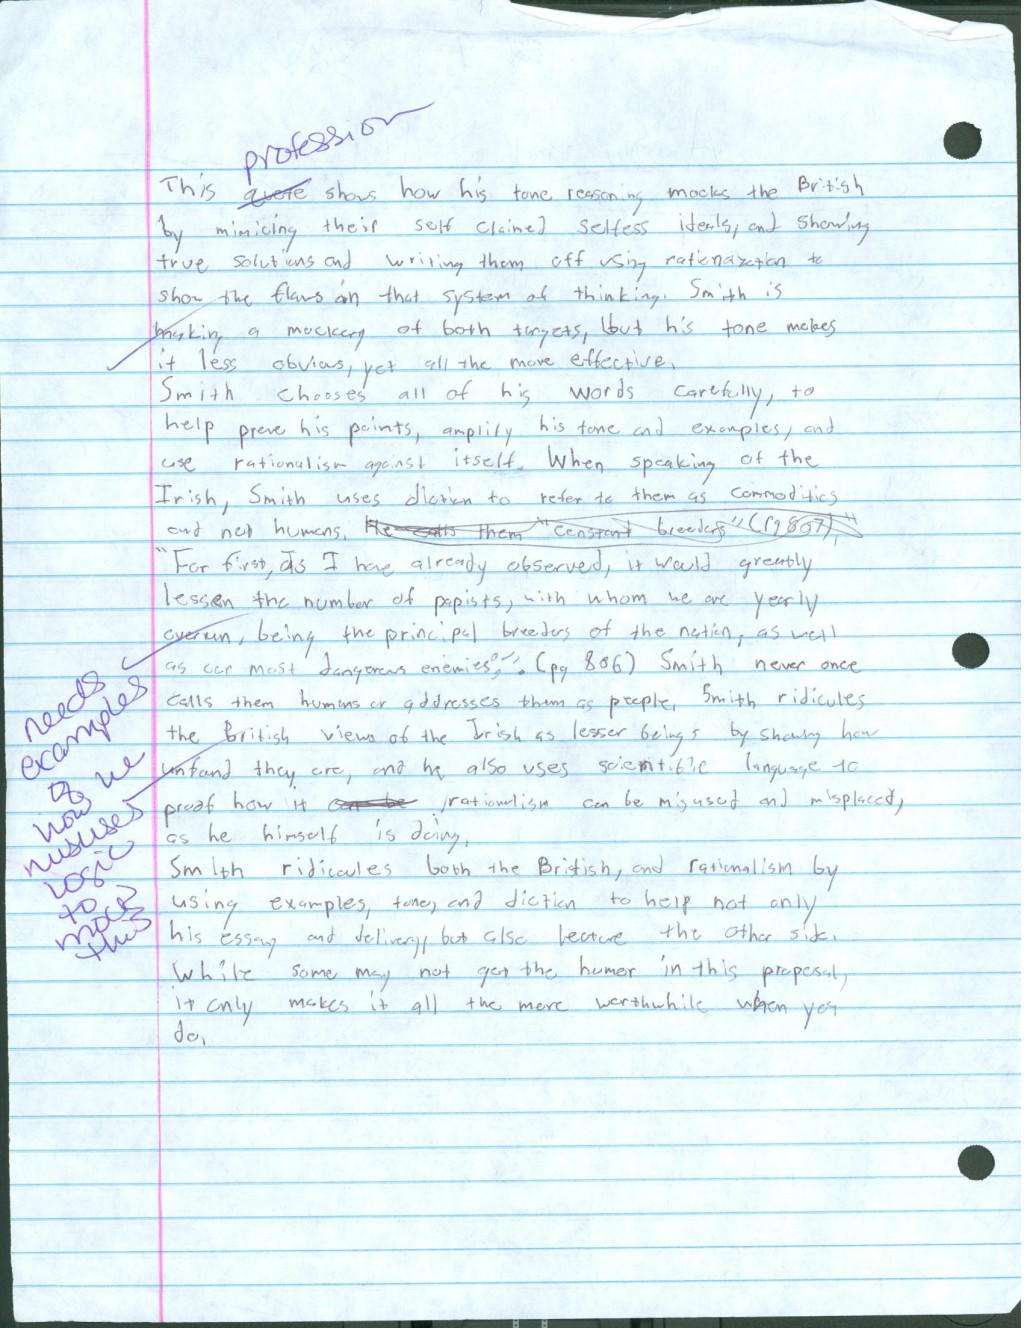 016 Research Paper Modest Proposal Essay Part 2 Formidable A Topics Large